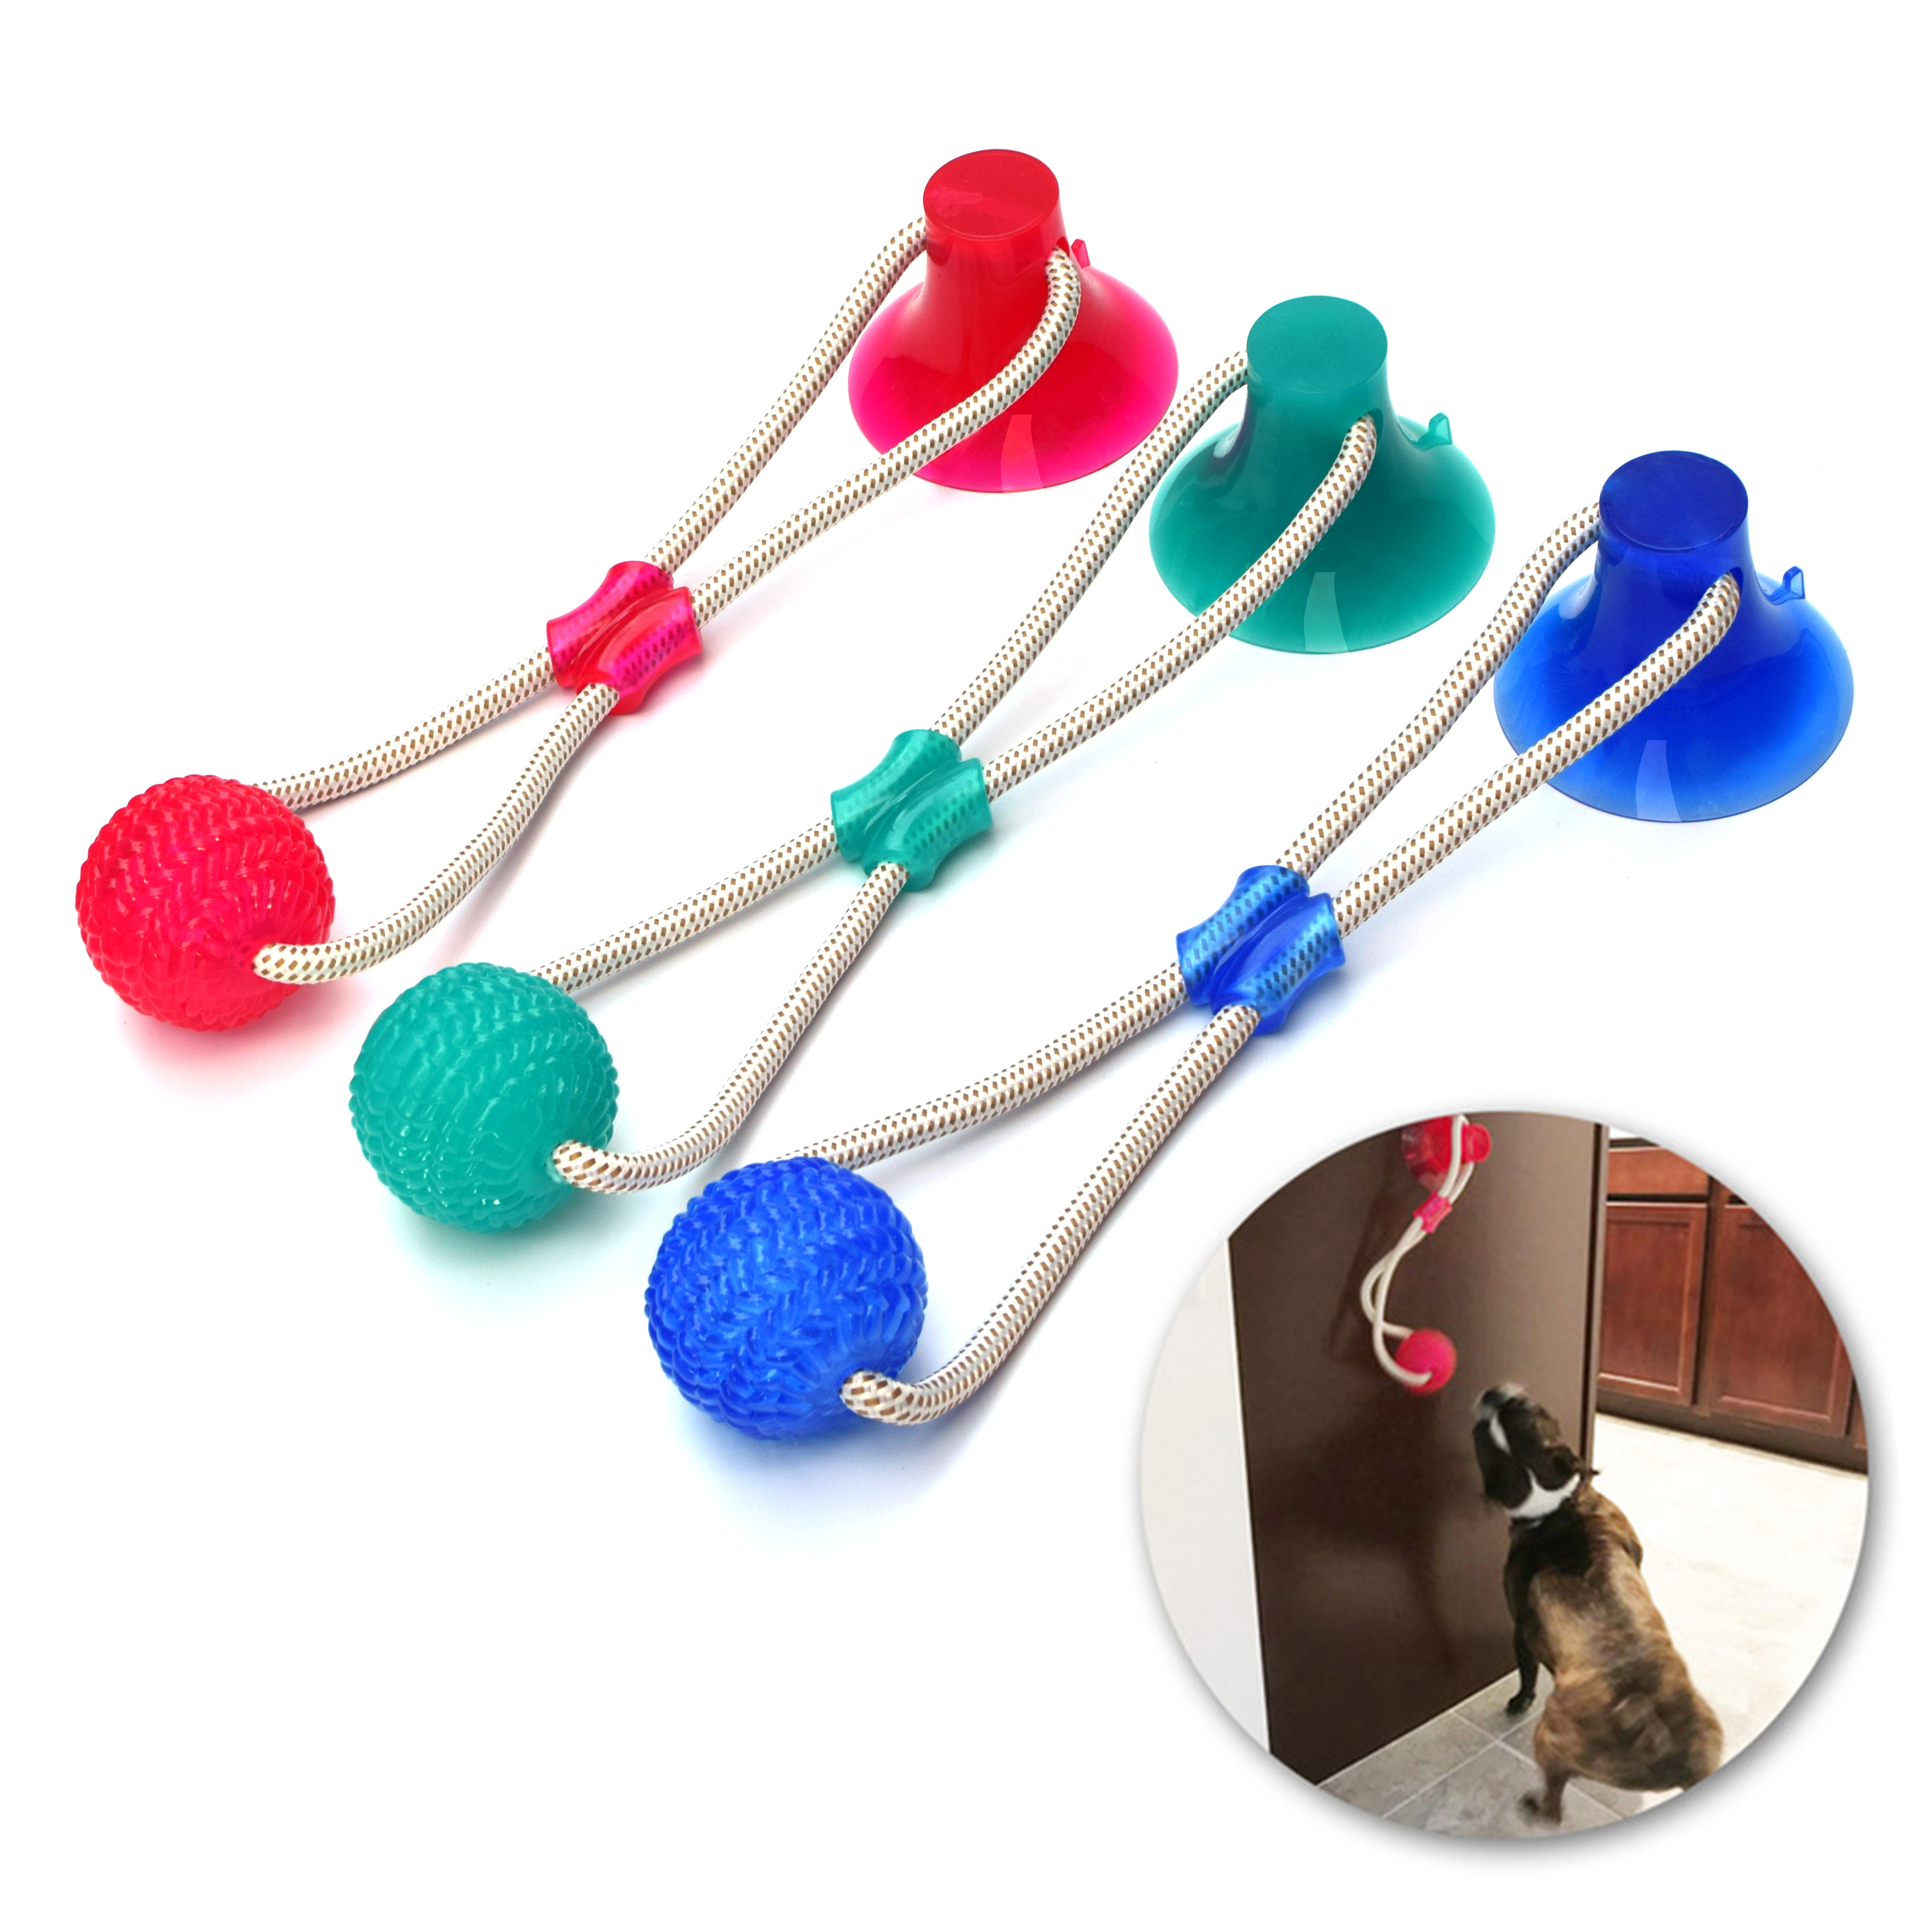 Multifunction Pet Molar Bite Dog Toys Rubber Chew Ball Cleaning Teeth Safe Elasticity TPR Soft Puppy Suction Cup Biting Dog Toy(China)